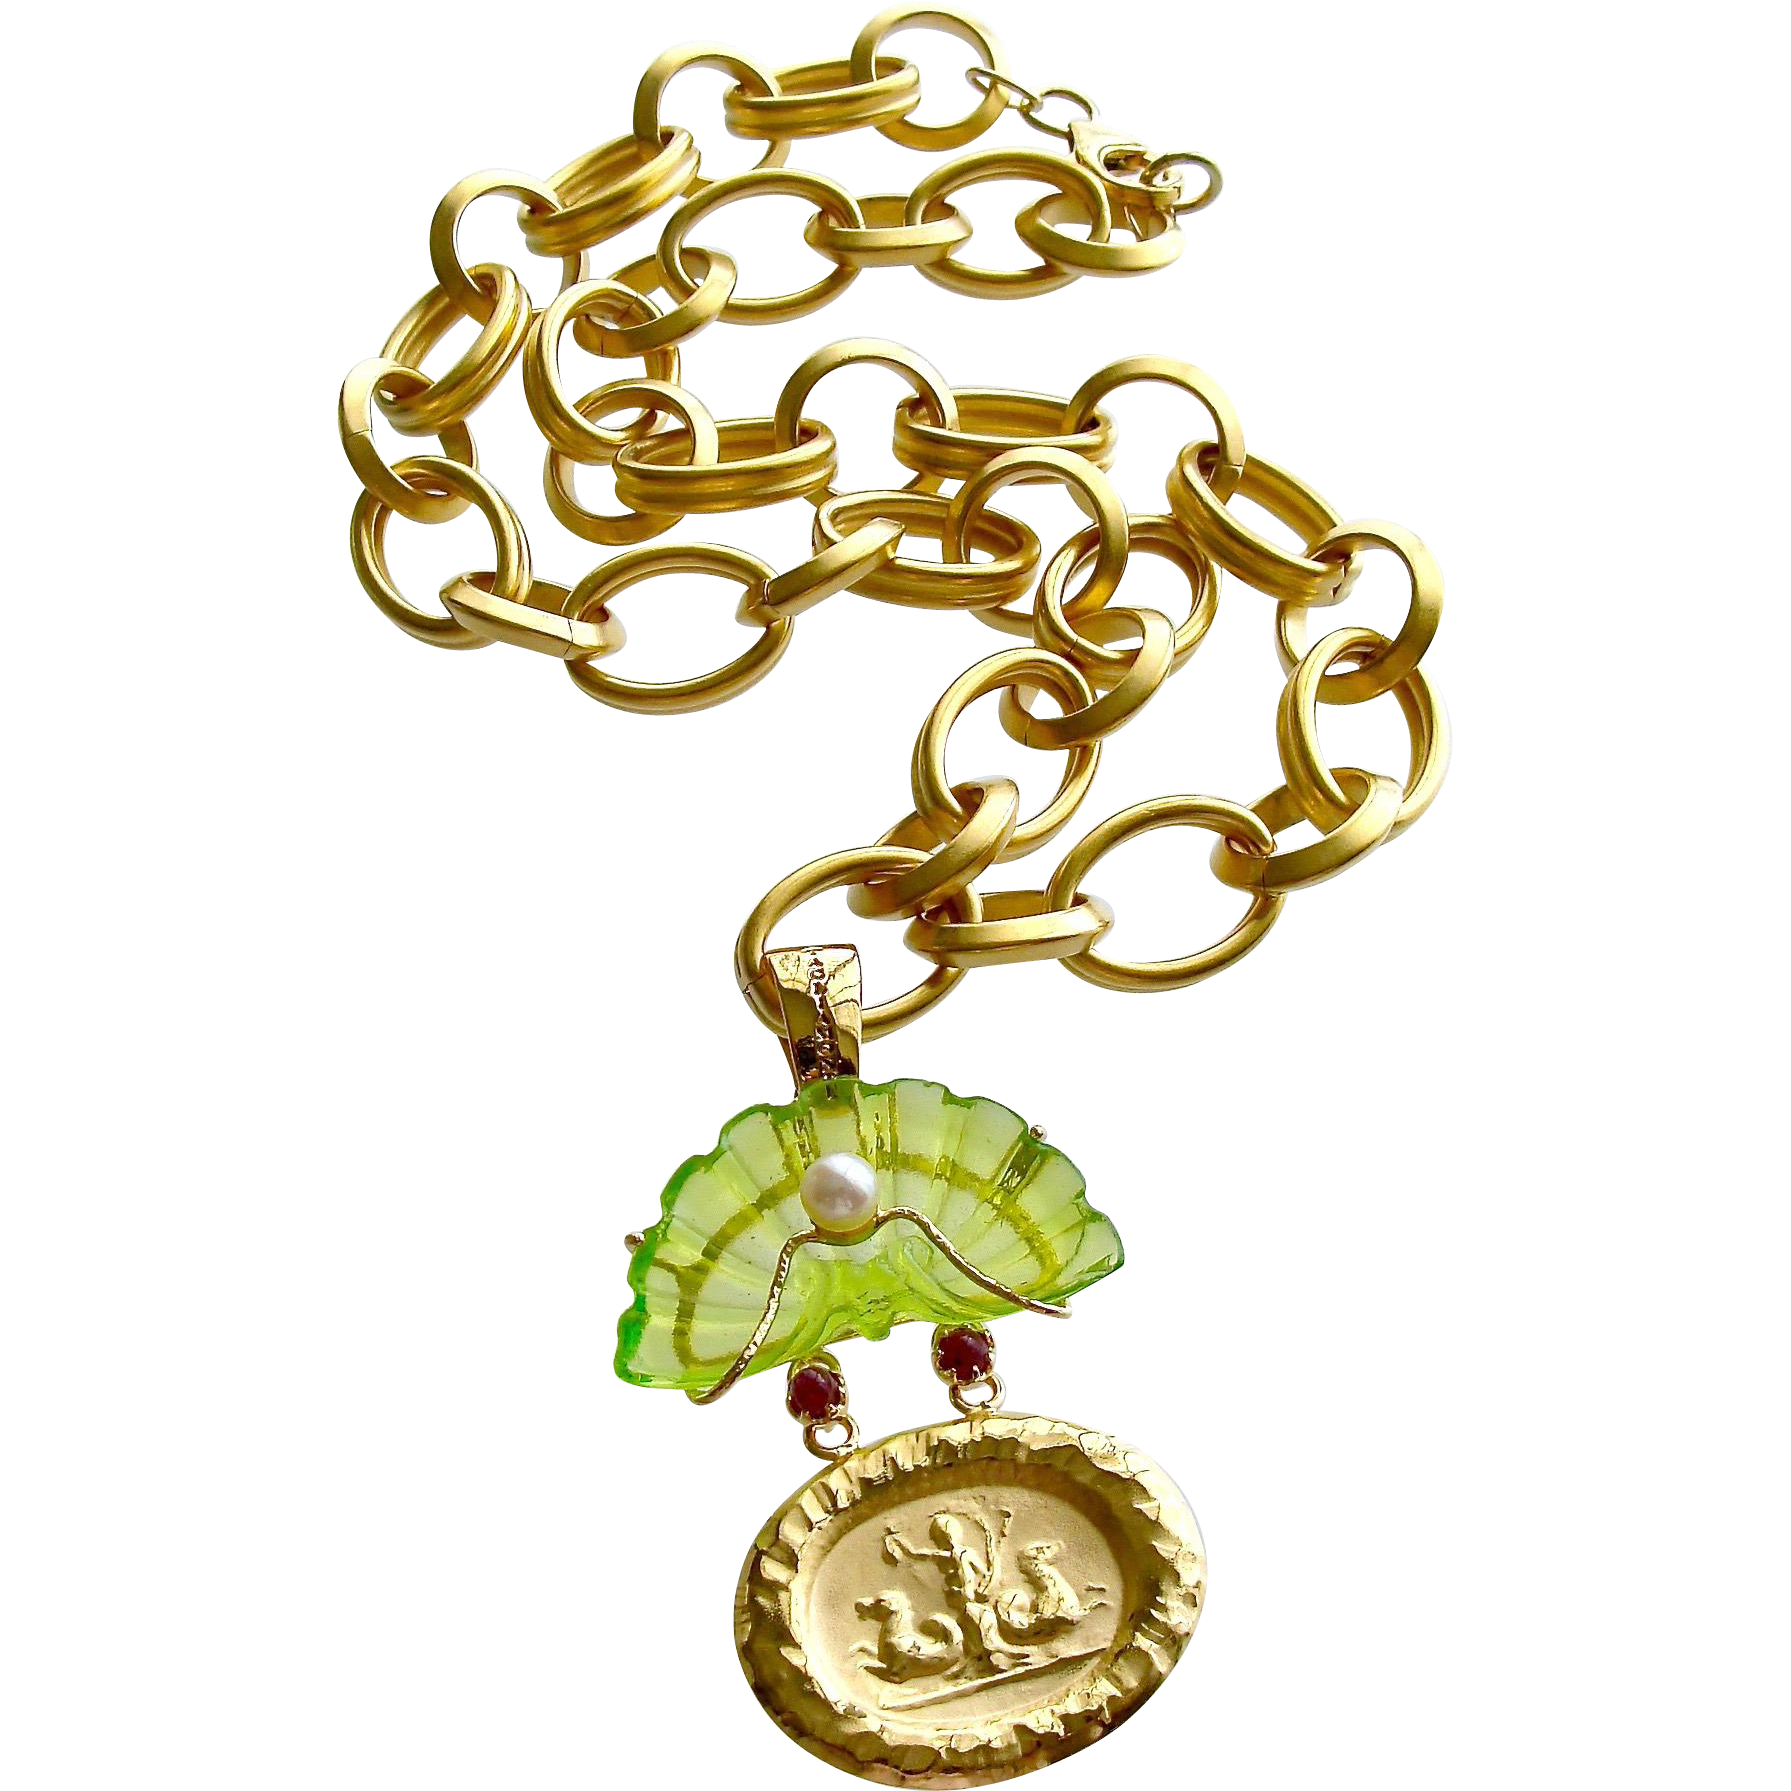 Intaglio Peridot Green Venetian Glass Shell Rubies Cultured Pearls Pendant Necklace - Irvina Necklace